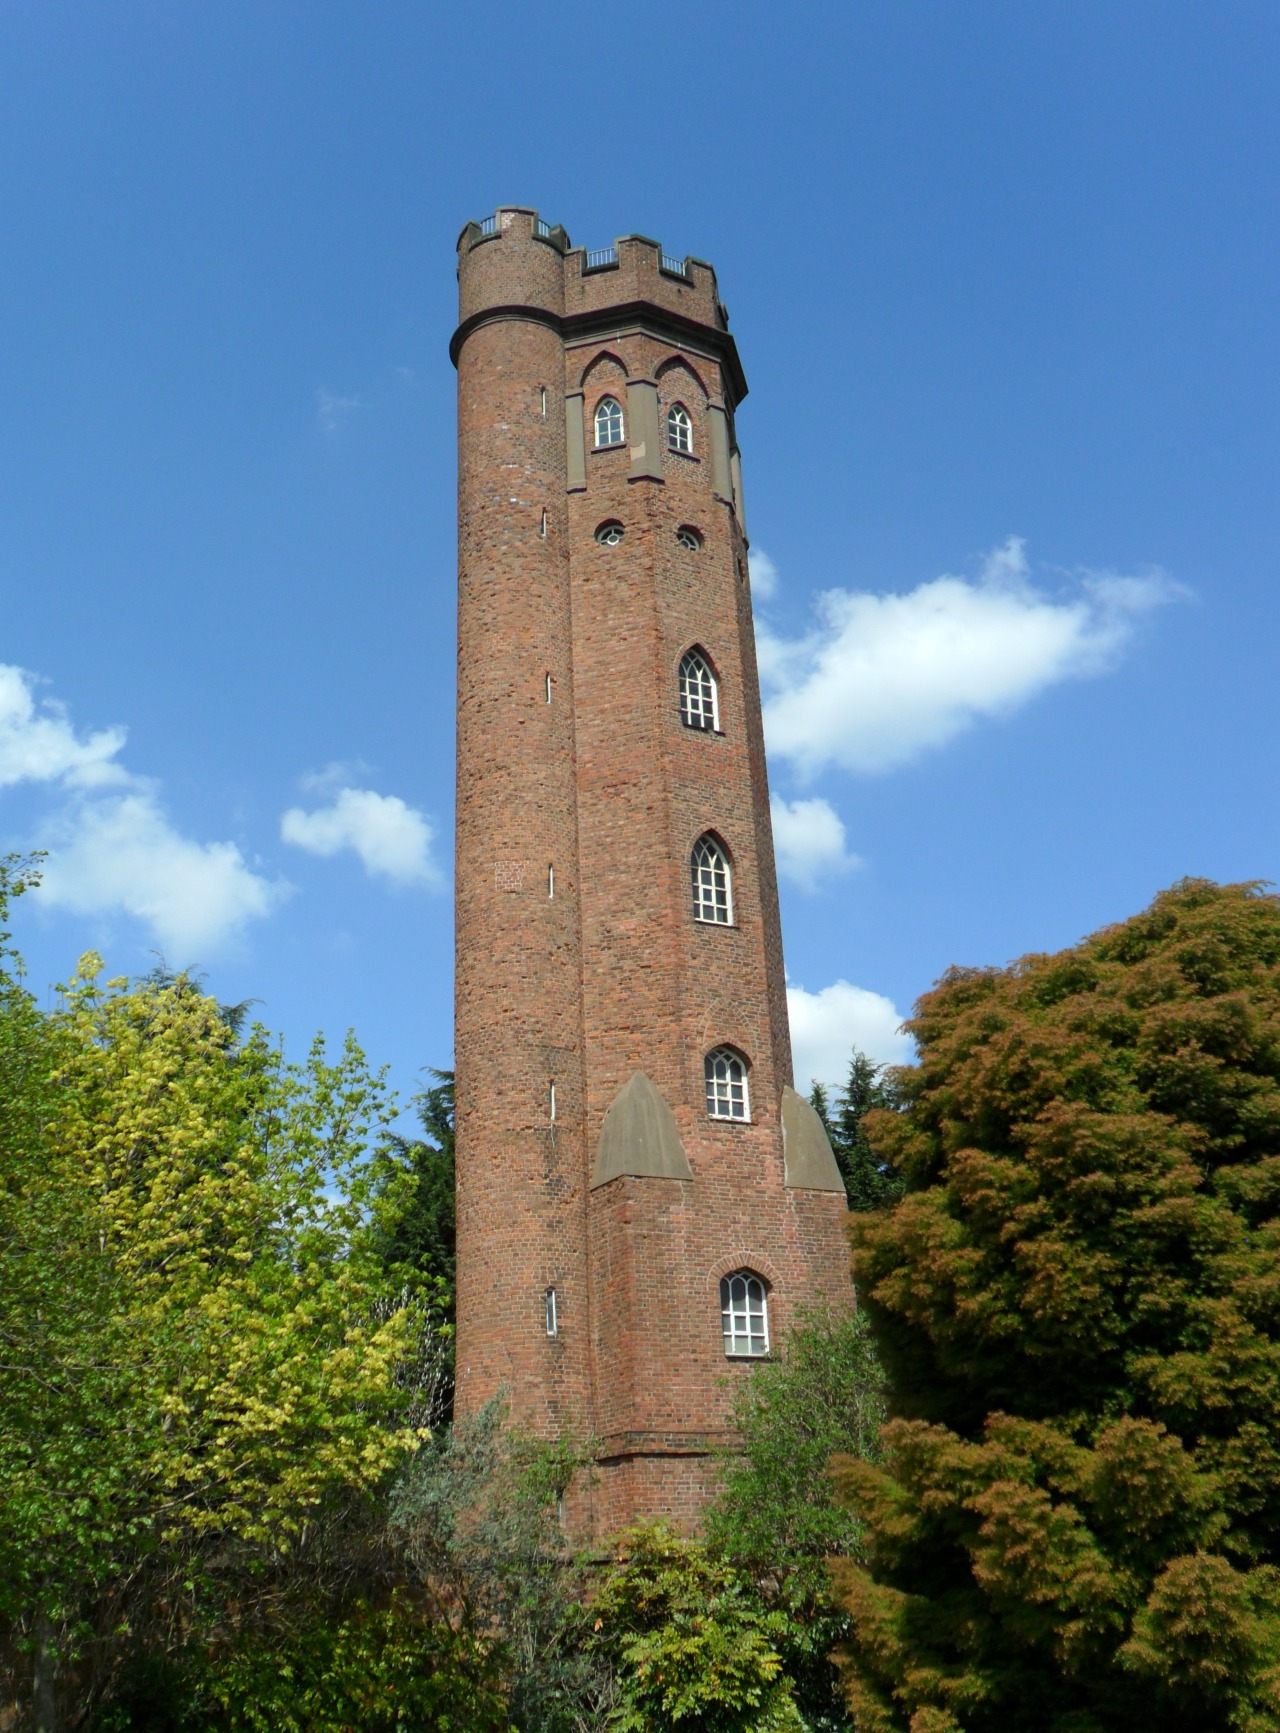 vwcampervan-aldridge:  Perrott's Folly, Edgbaston. One of the towers that inspired for J.R.R Tolkien in Lord Of the Rings *The Two Towers* when he lived in Birmingham.   Edgbaston, Birmingham, England All Original Photography by http://vwcampervan-aldridge.tumblr.com